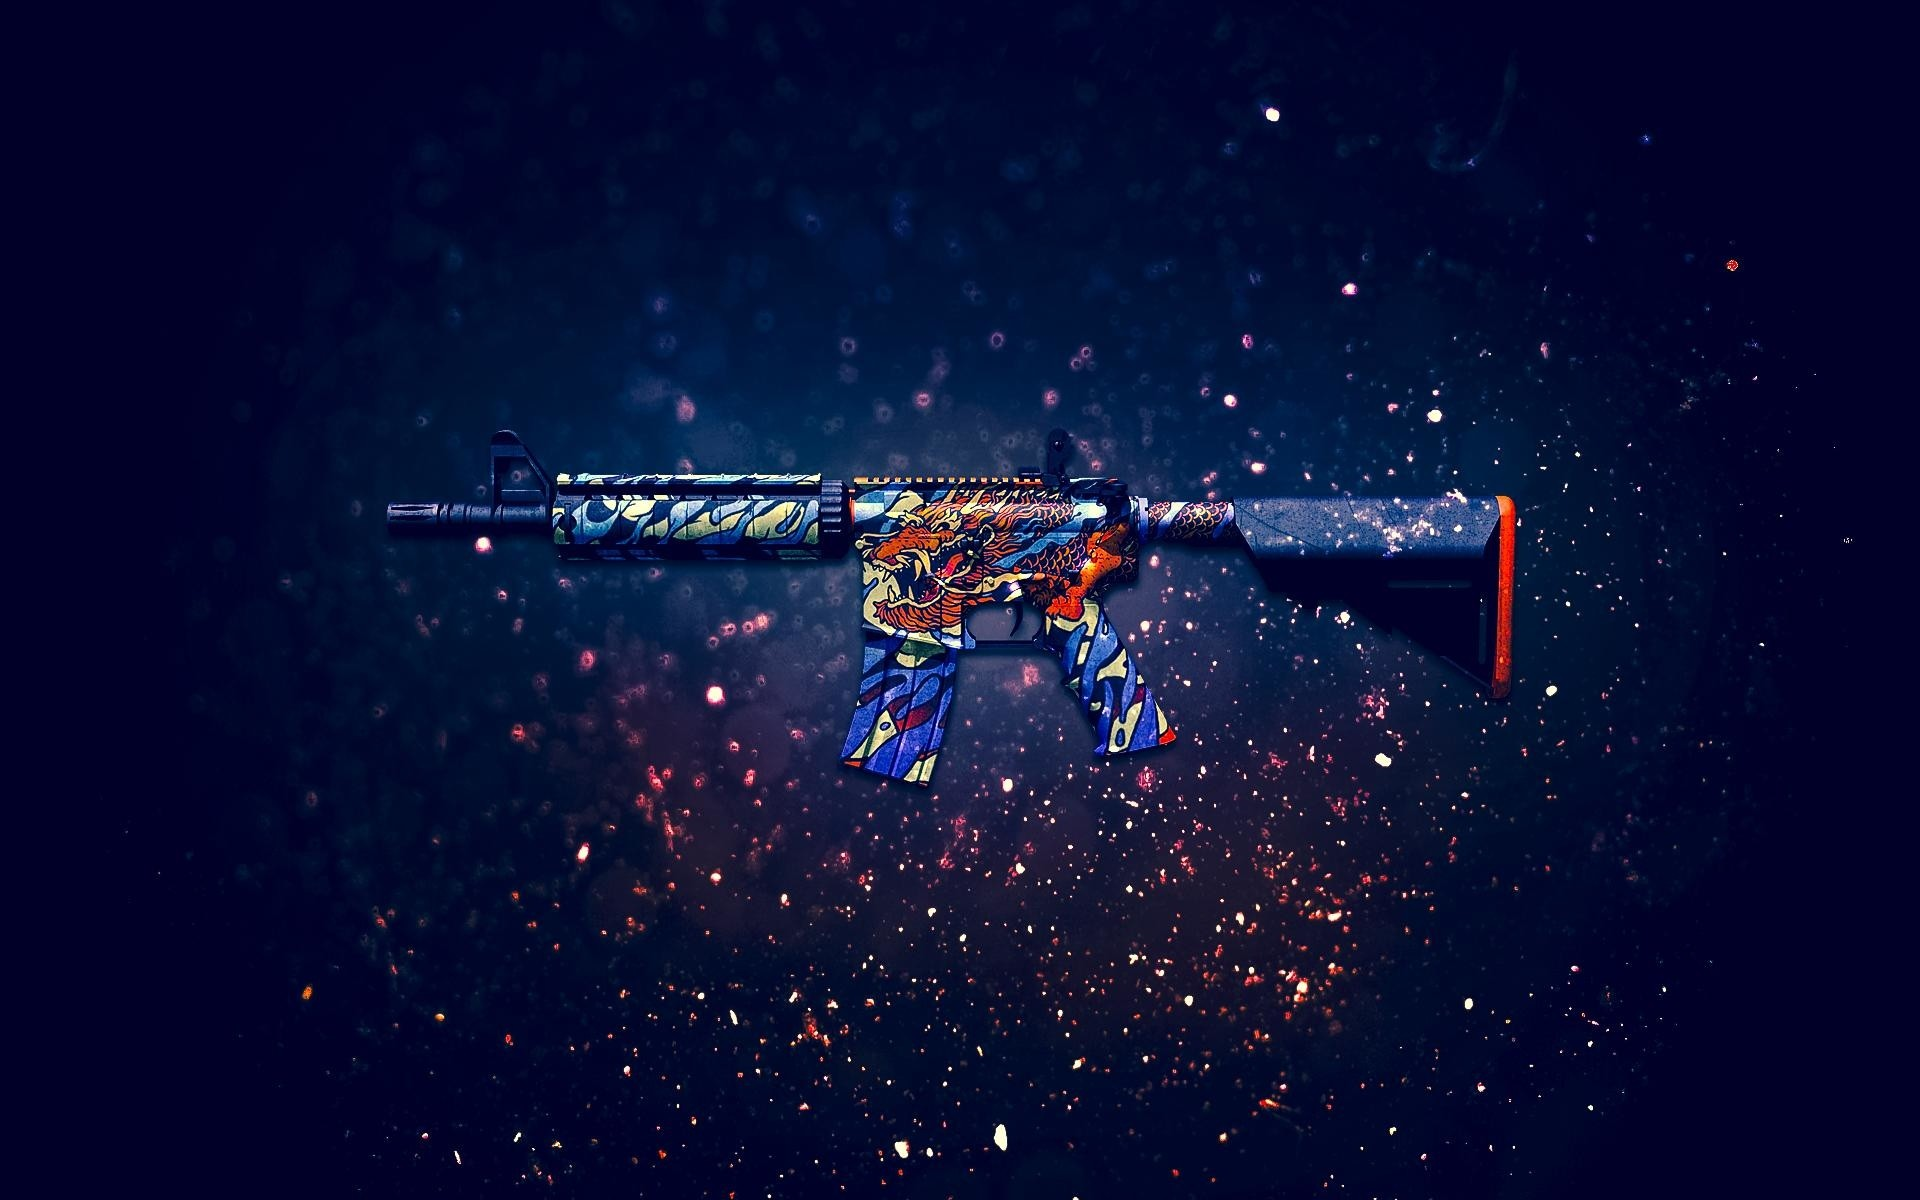 AWP Dragon Lore Sniper Rifle Counter Strike Global Offensive Weapon Skin  | Надо купить | Pinterest | Weapons, Dragons and Gaming